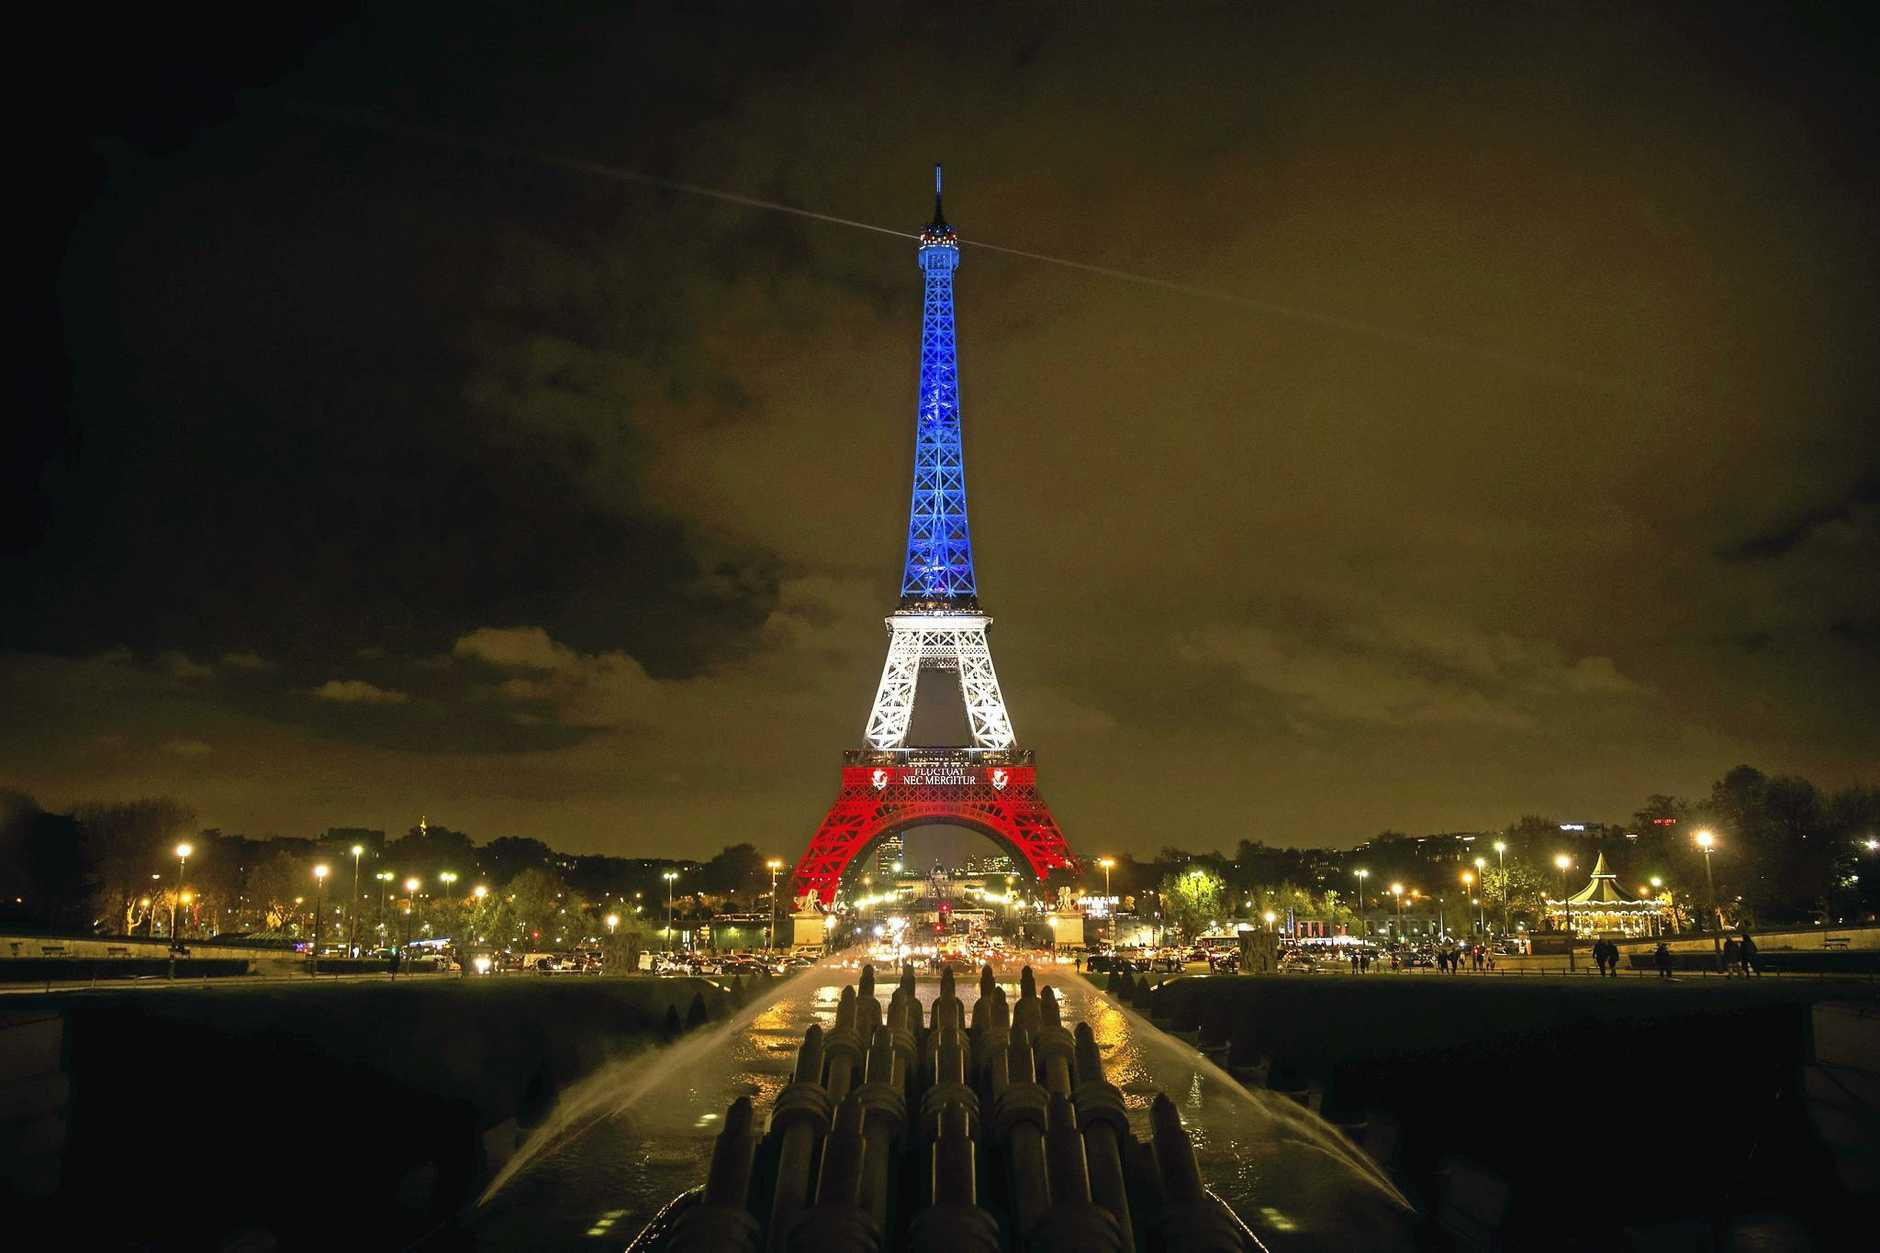 epaselect epa05028805 The Eiffel Tower is illuminated in the colors of the French flag in tribute for the victims of the 13 November terror attacks, in Paris, France, 16 November 2015. At least 132 people were killed and some 350 injured in the terror attacks on 13 November, which targeted a concert venue, a sports stadium, and several restaurants and bars in Paris. Authorities believe that three coordinated teams of terrorists armed with rifles and explosive vests carried out the attacks, which the Islamic State (IS) extremist group has claimed responsibility for.  EPA/ETIENNE LAURENT